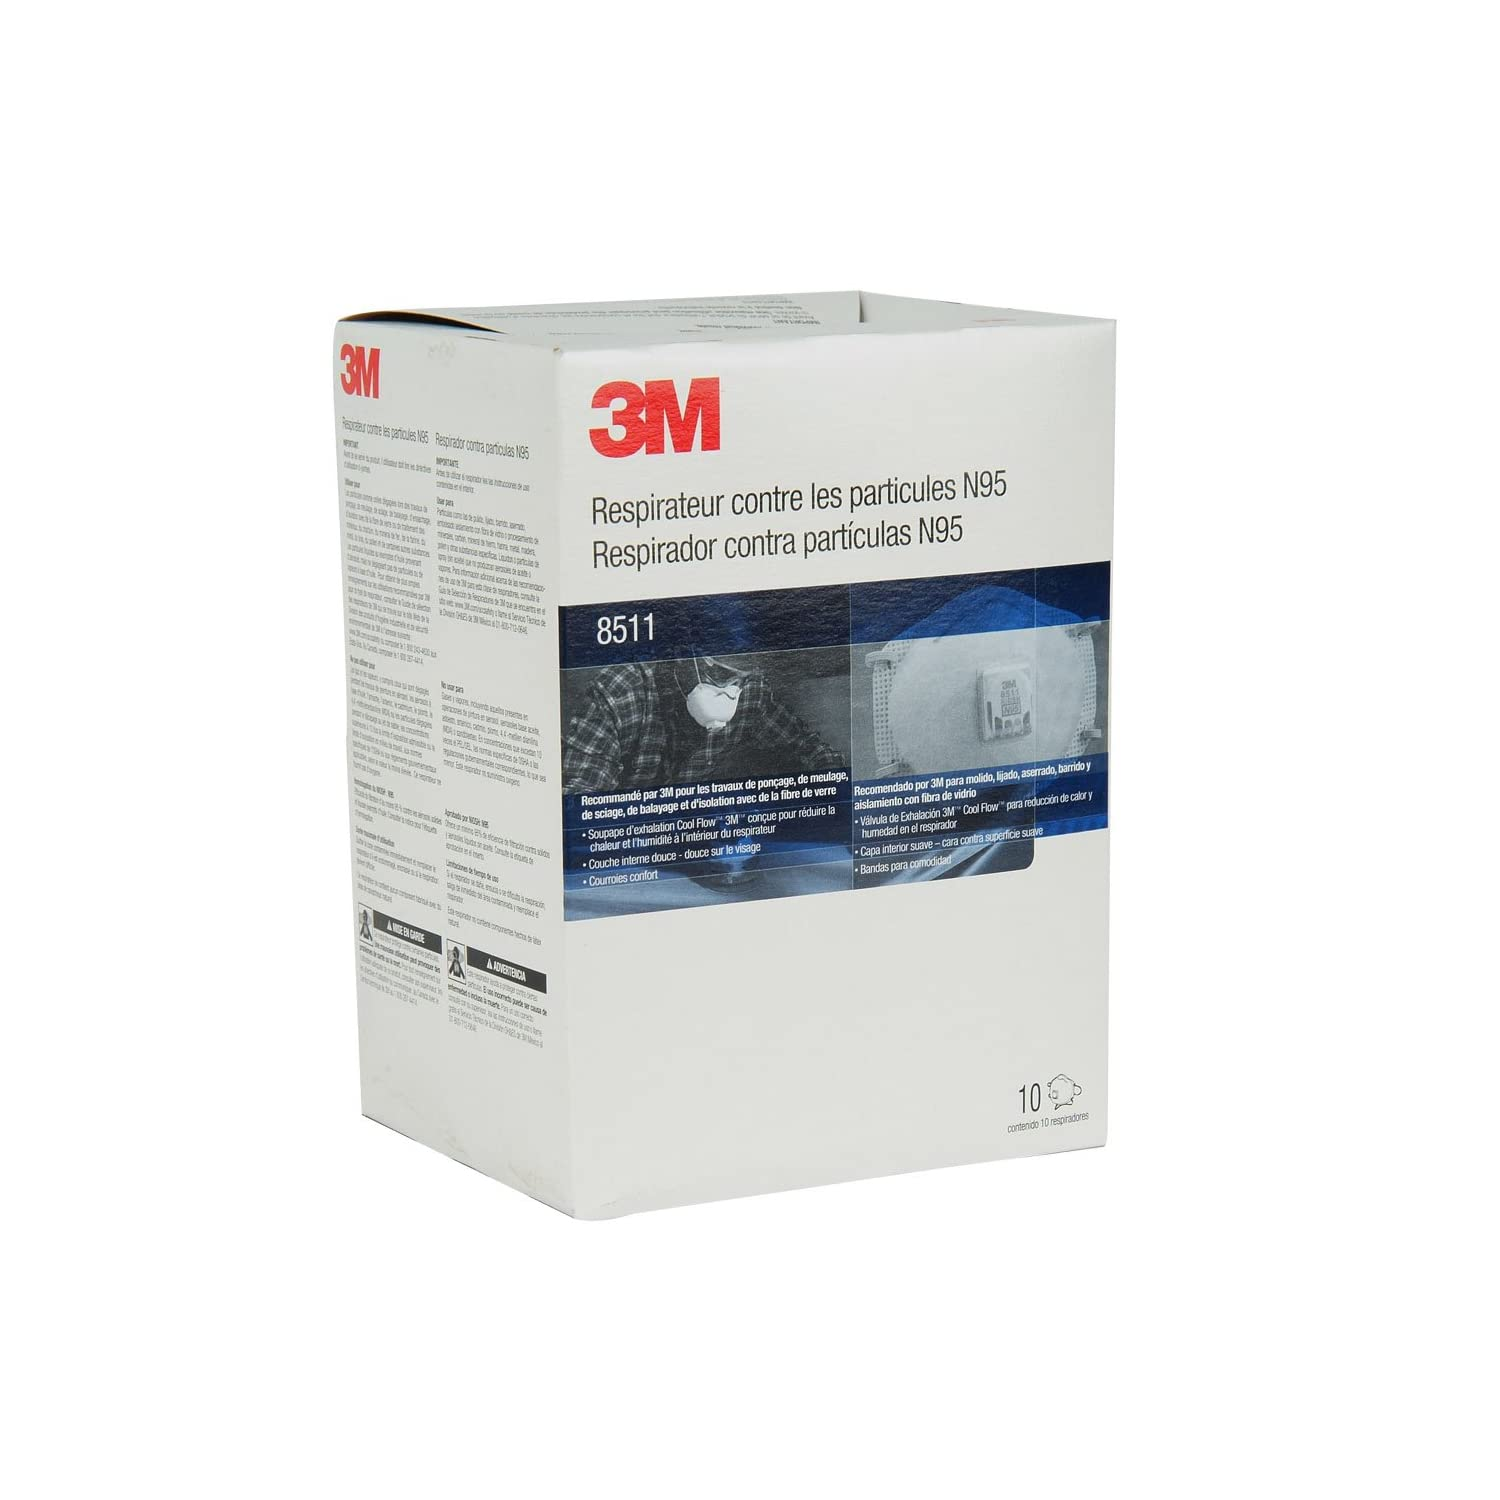 3M 8511 Particulate Sanding N95 Respirator with Valve, 10-Pack 口罩 $14.05(17.56*0.8)